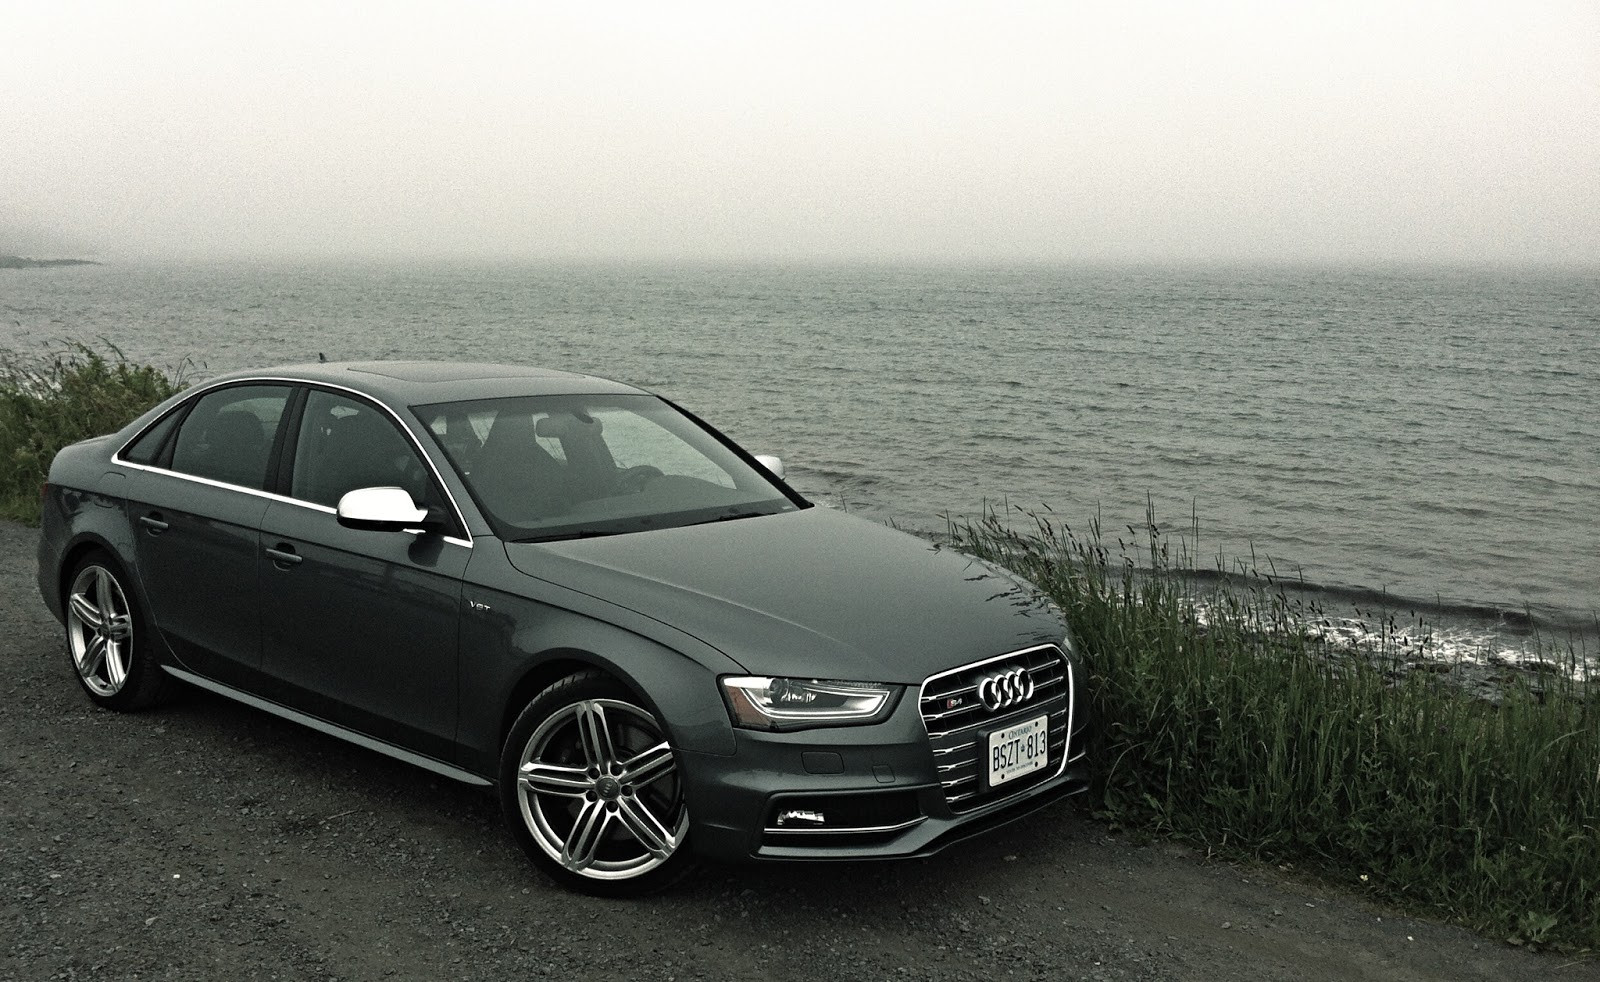 2014 Audi S4 Review – What's Past Is Prologue | GCBC